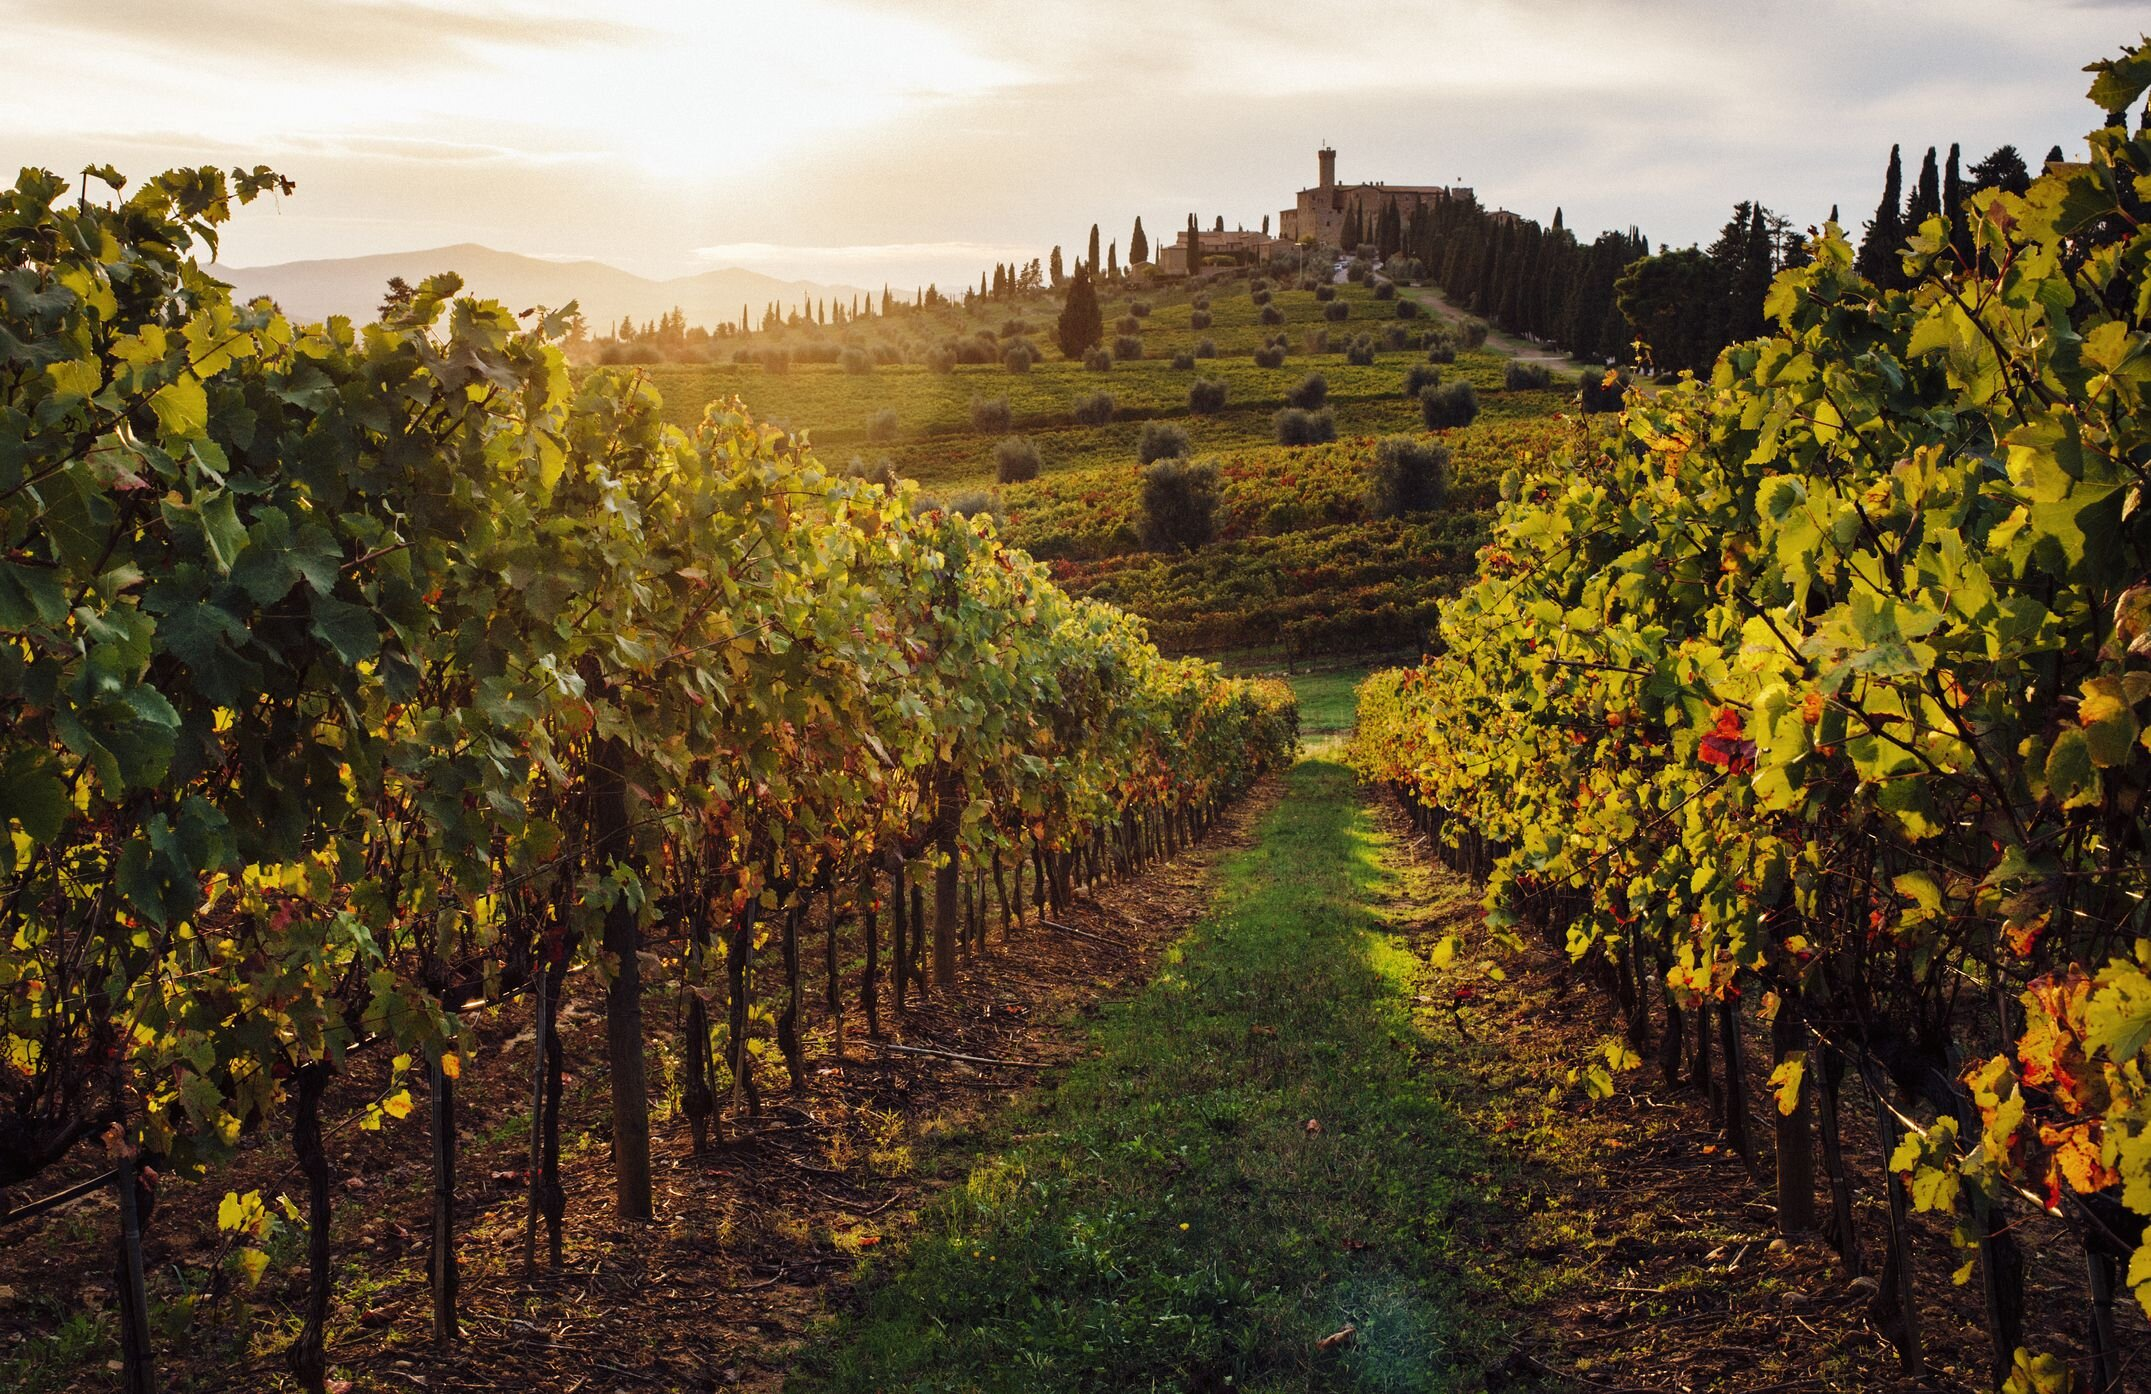 vineyard-in-tuscany-5c298f19c9e77c0001f7e4fc.jpg